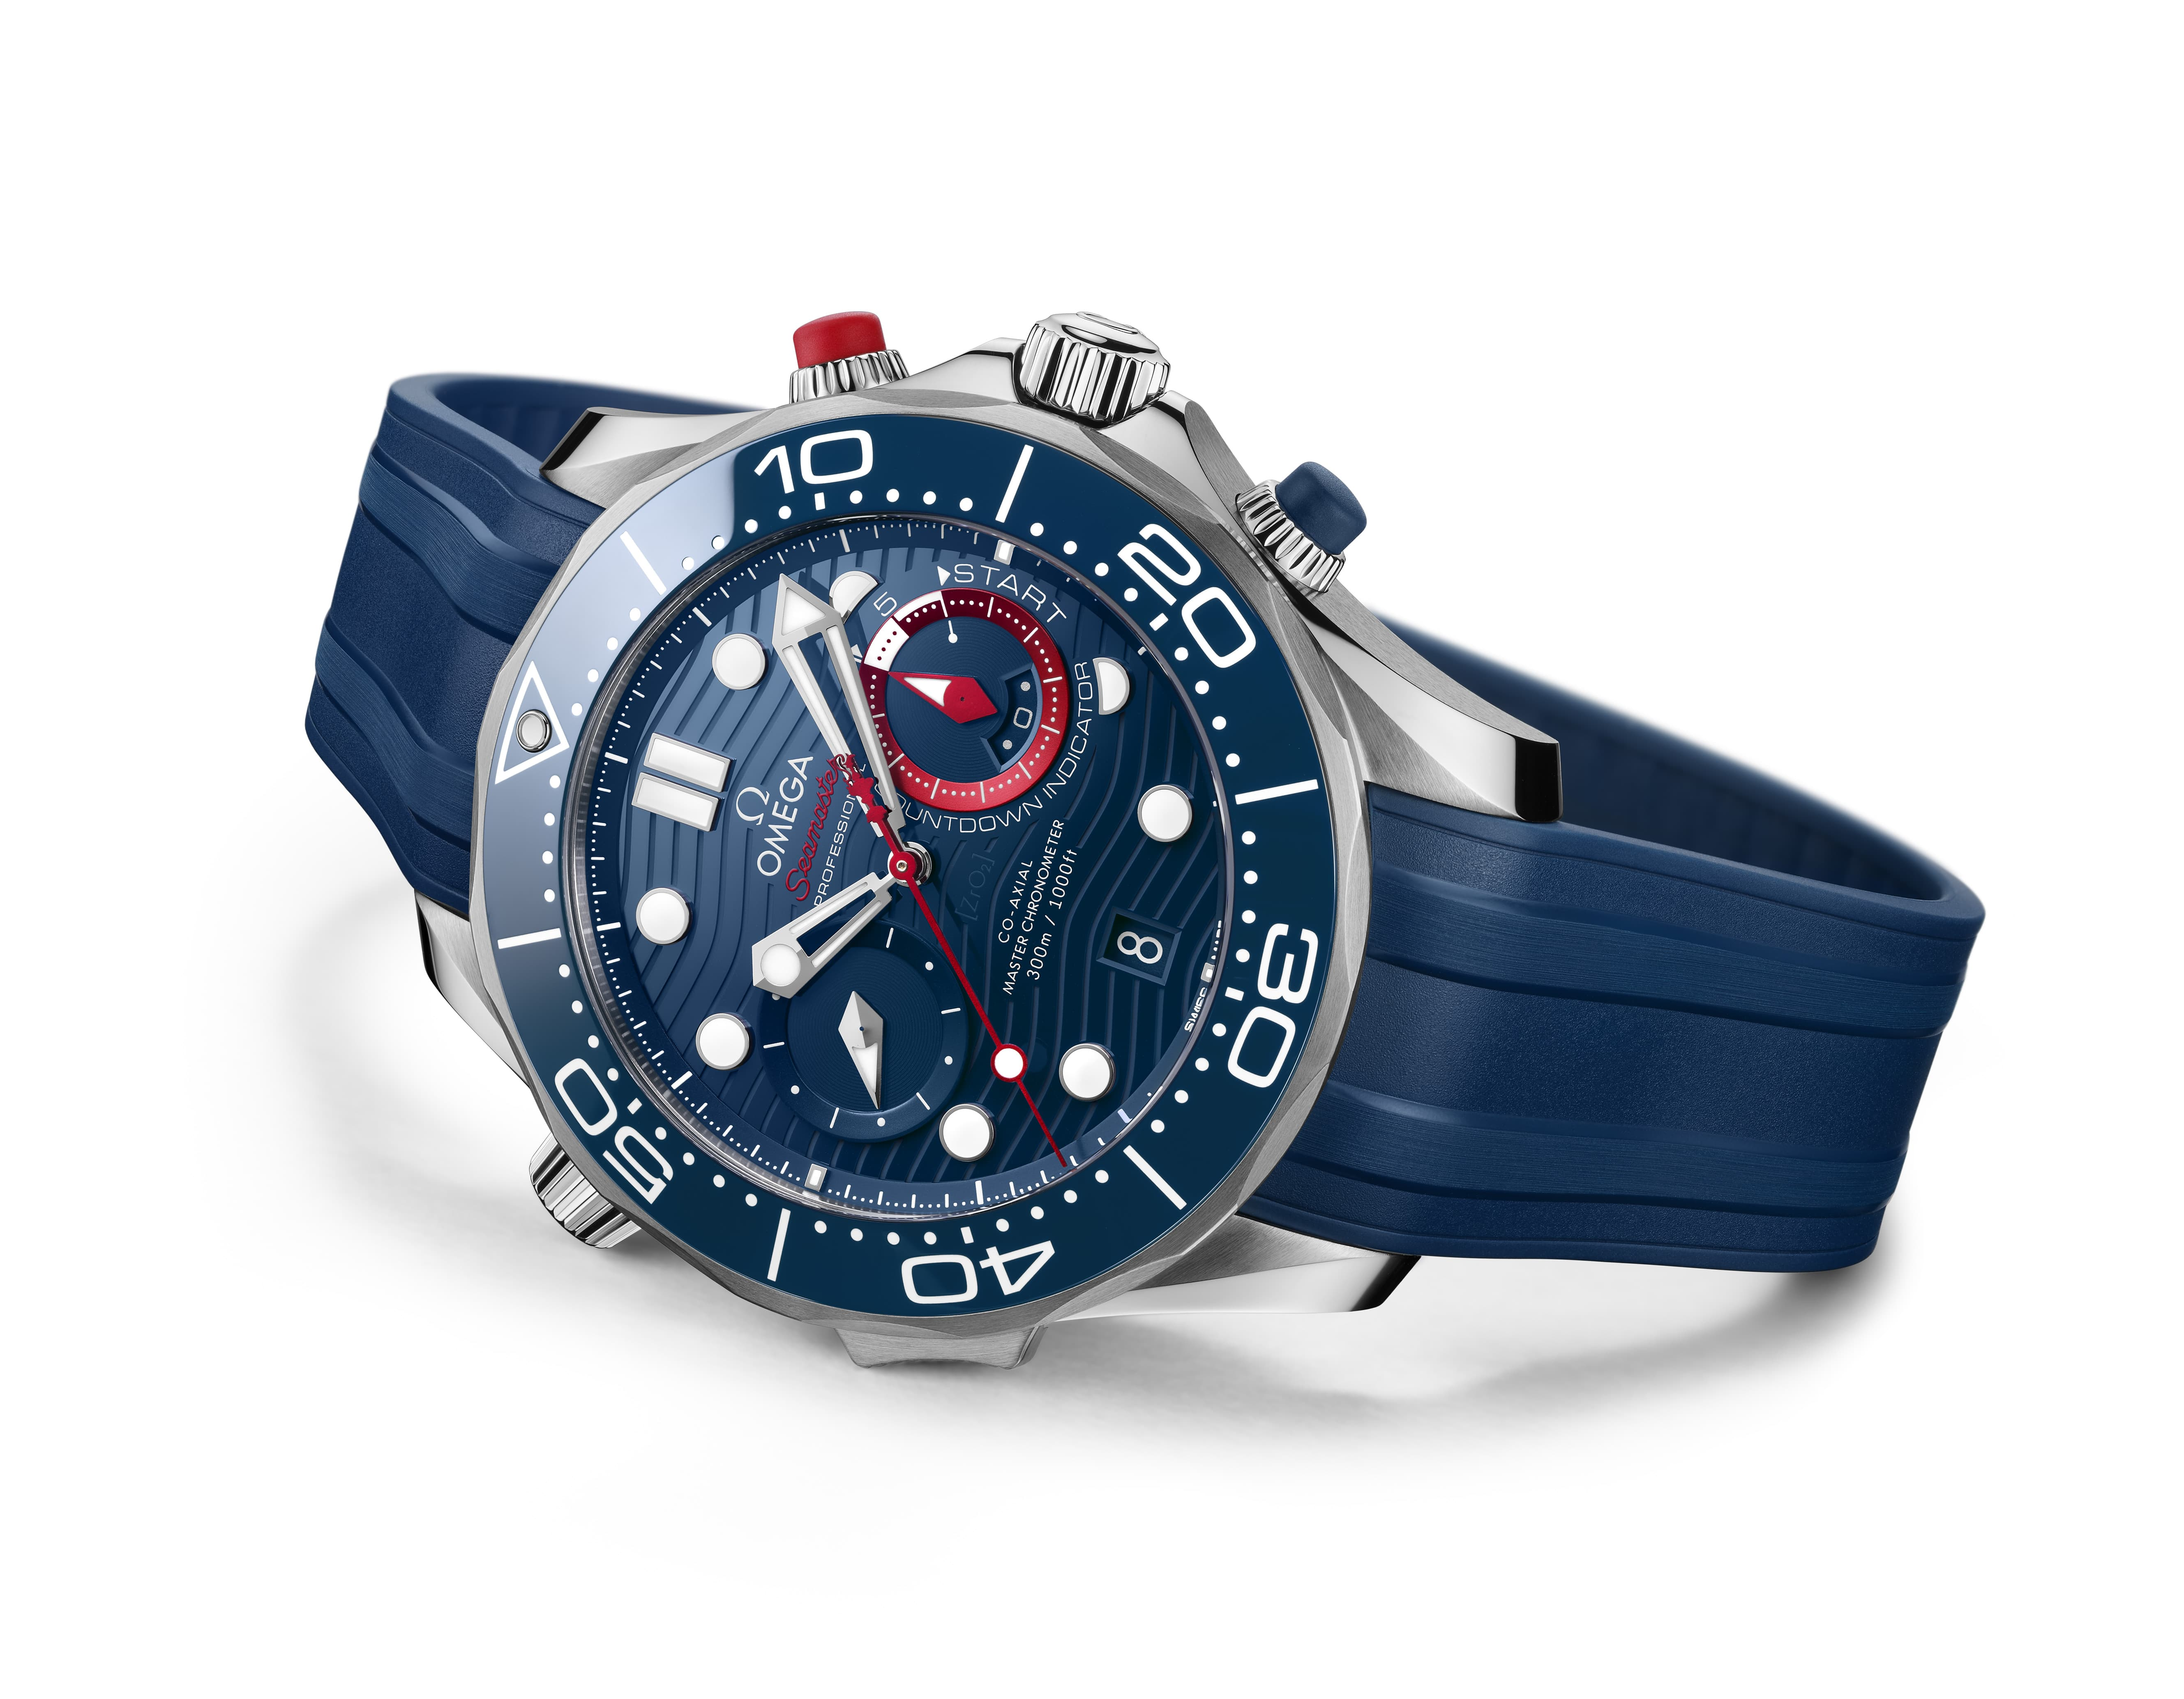 Omega Launches A Race-Ready Timepiece